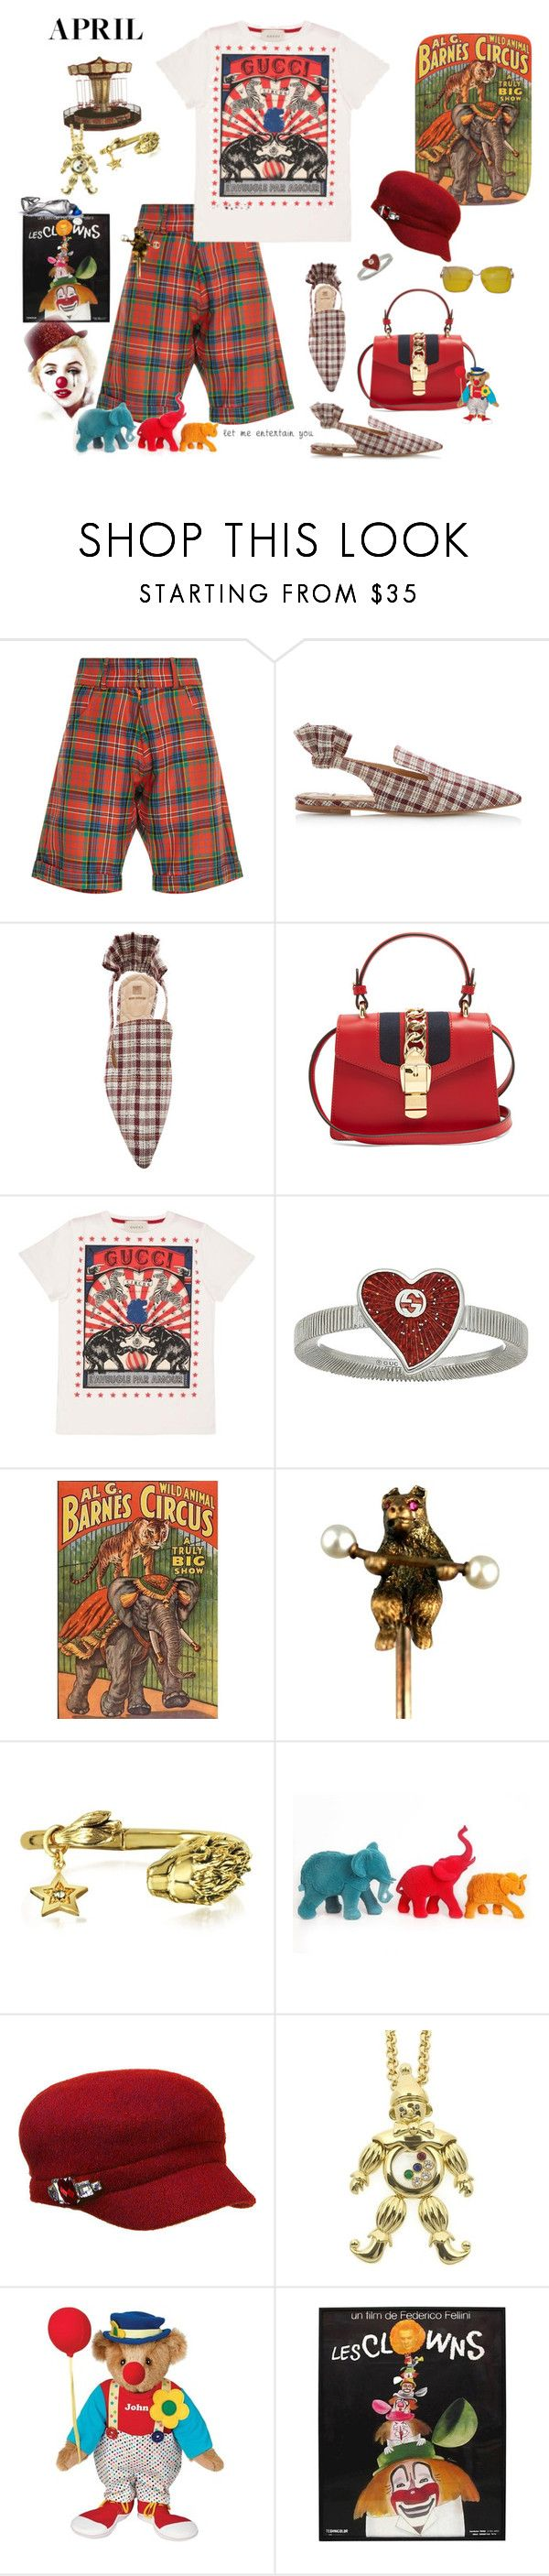 """""""April- Fashion Fool"""" by juliabachmann ❤ liked on Polyvore featuring Tata Naka, Rosie Assoulin, Gucci, Roberto Cavalli, Temerity Jones, Betmar and Chopard"""